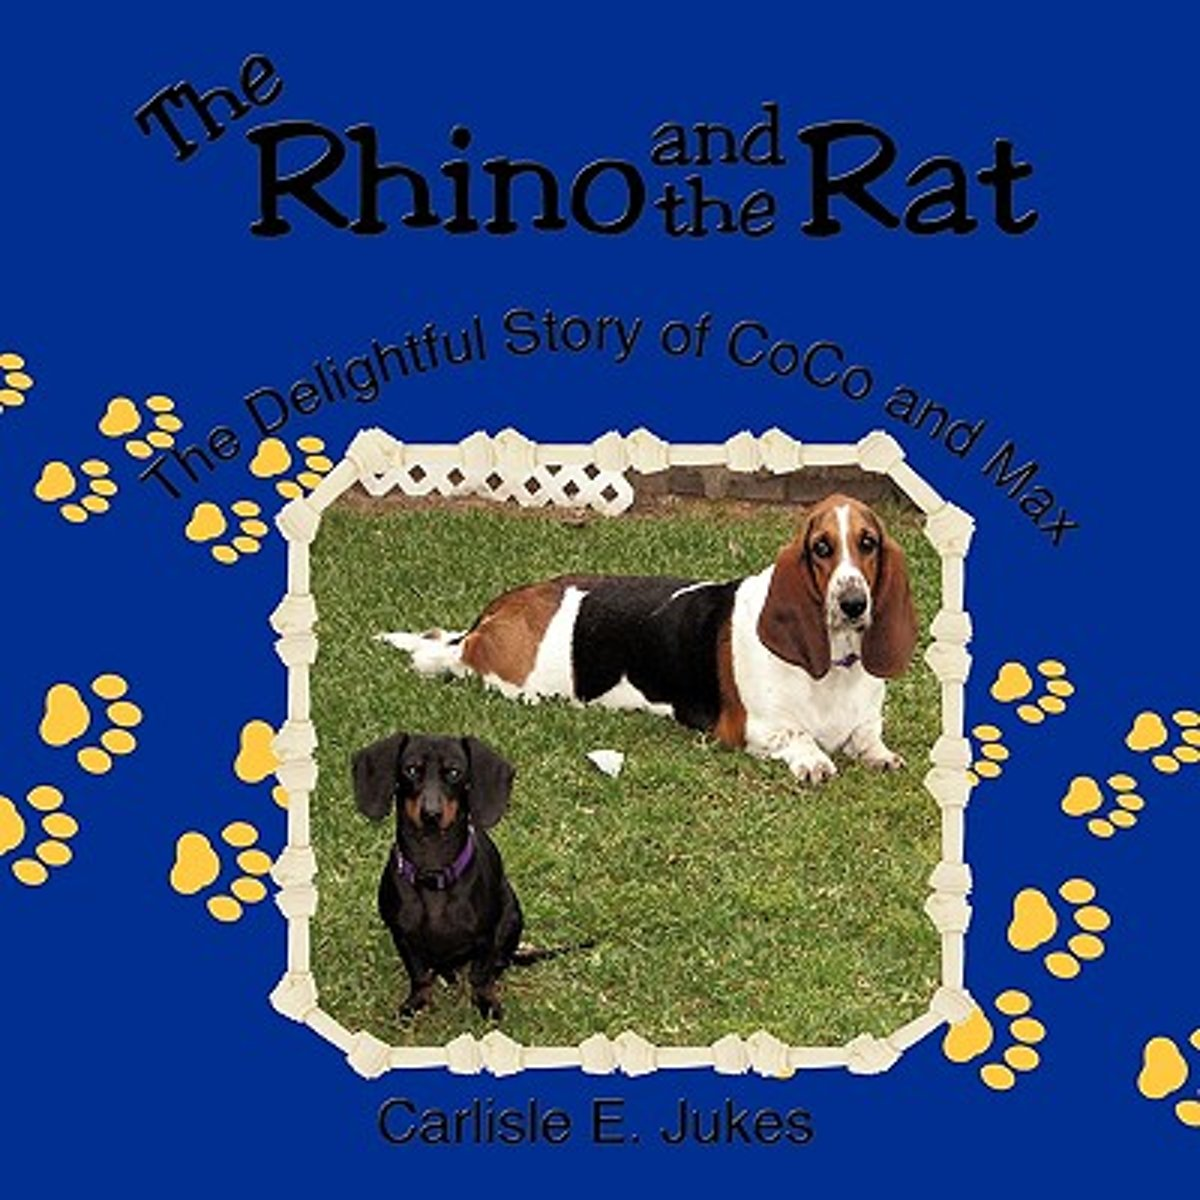 The Rhino and the Rat